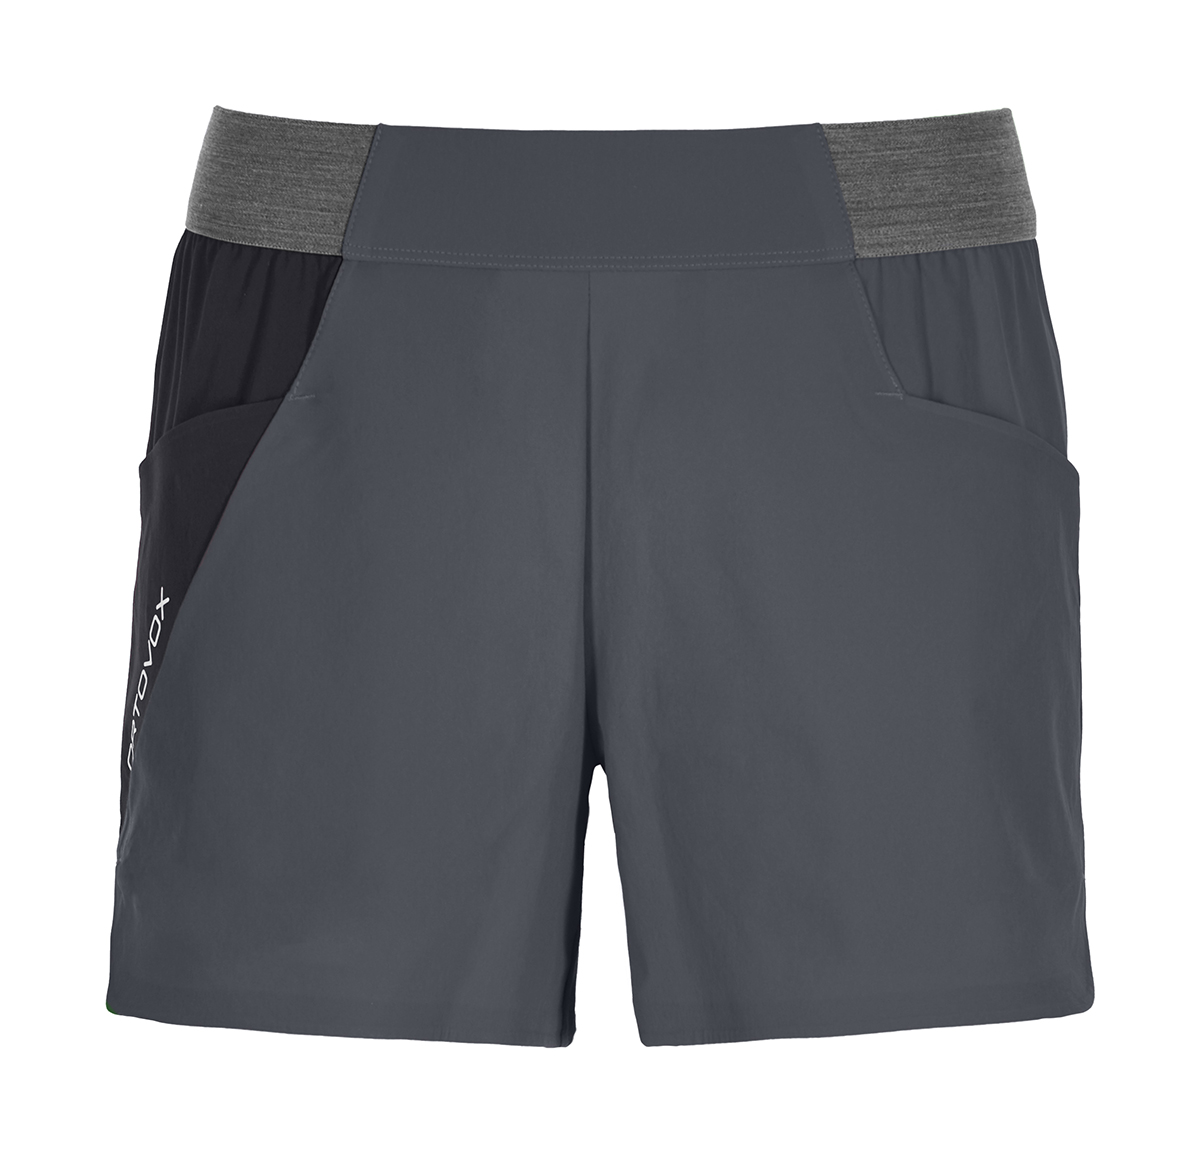 ORTOVOX W's Piz Selva Light Shorts Black Steel